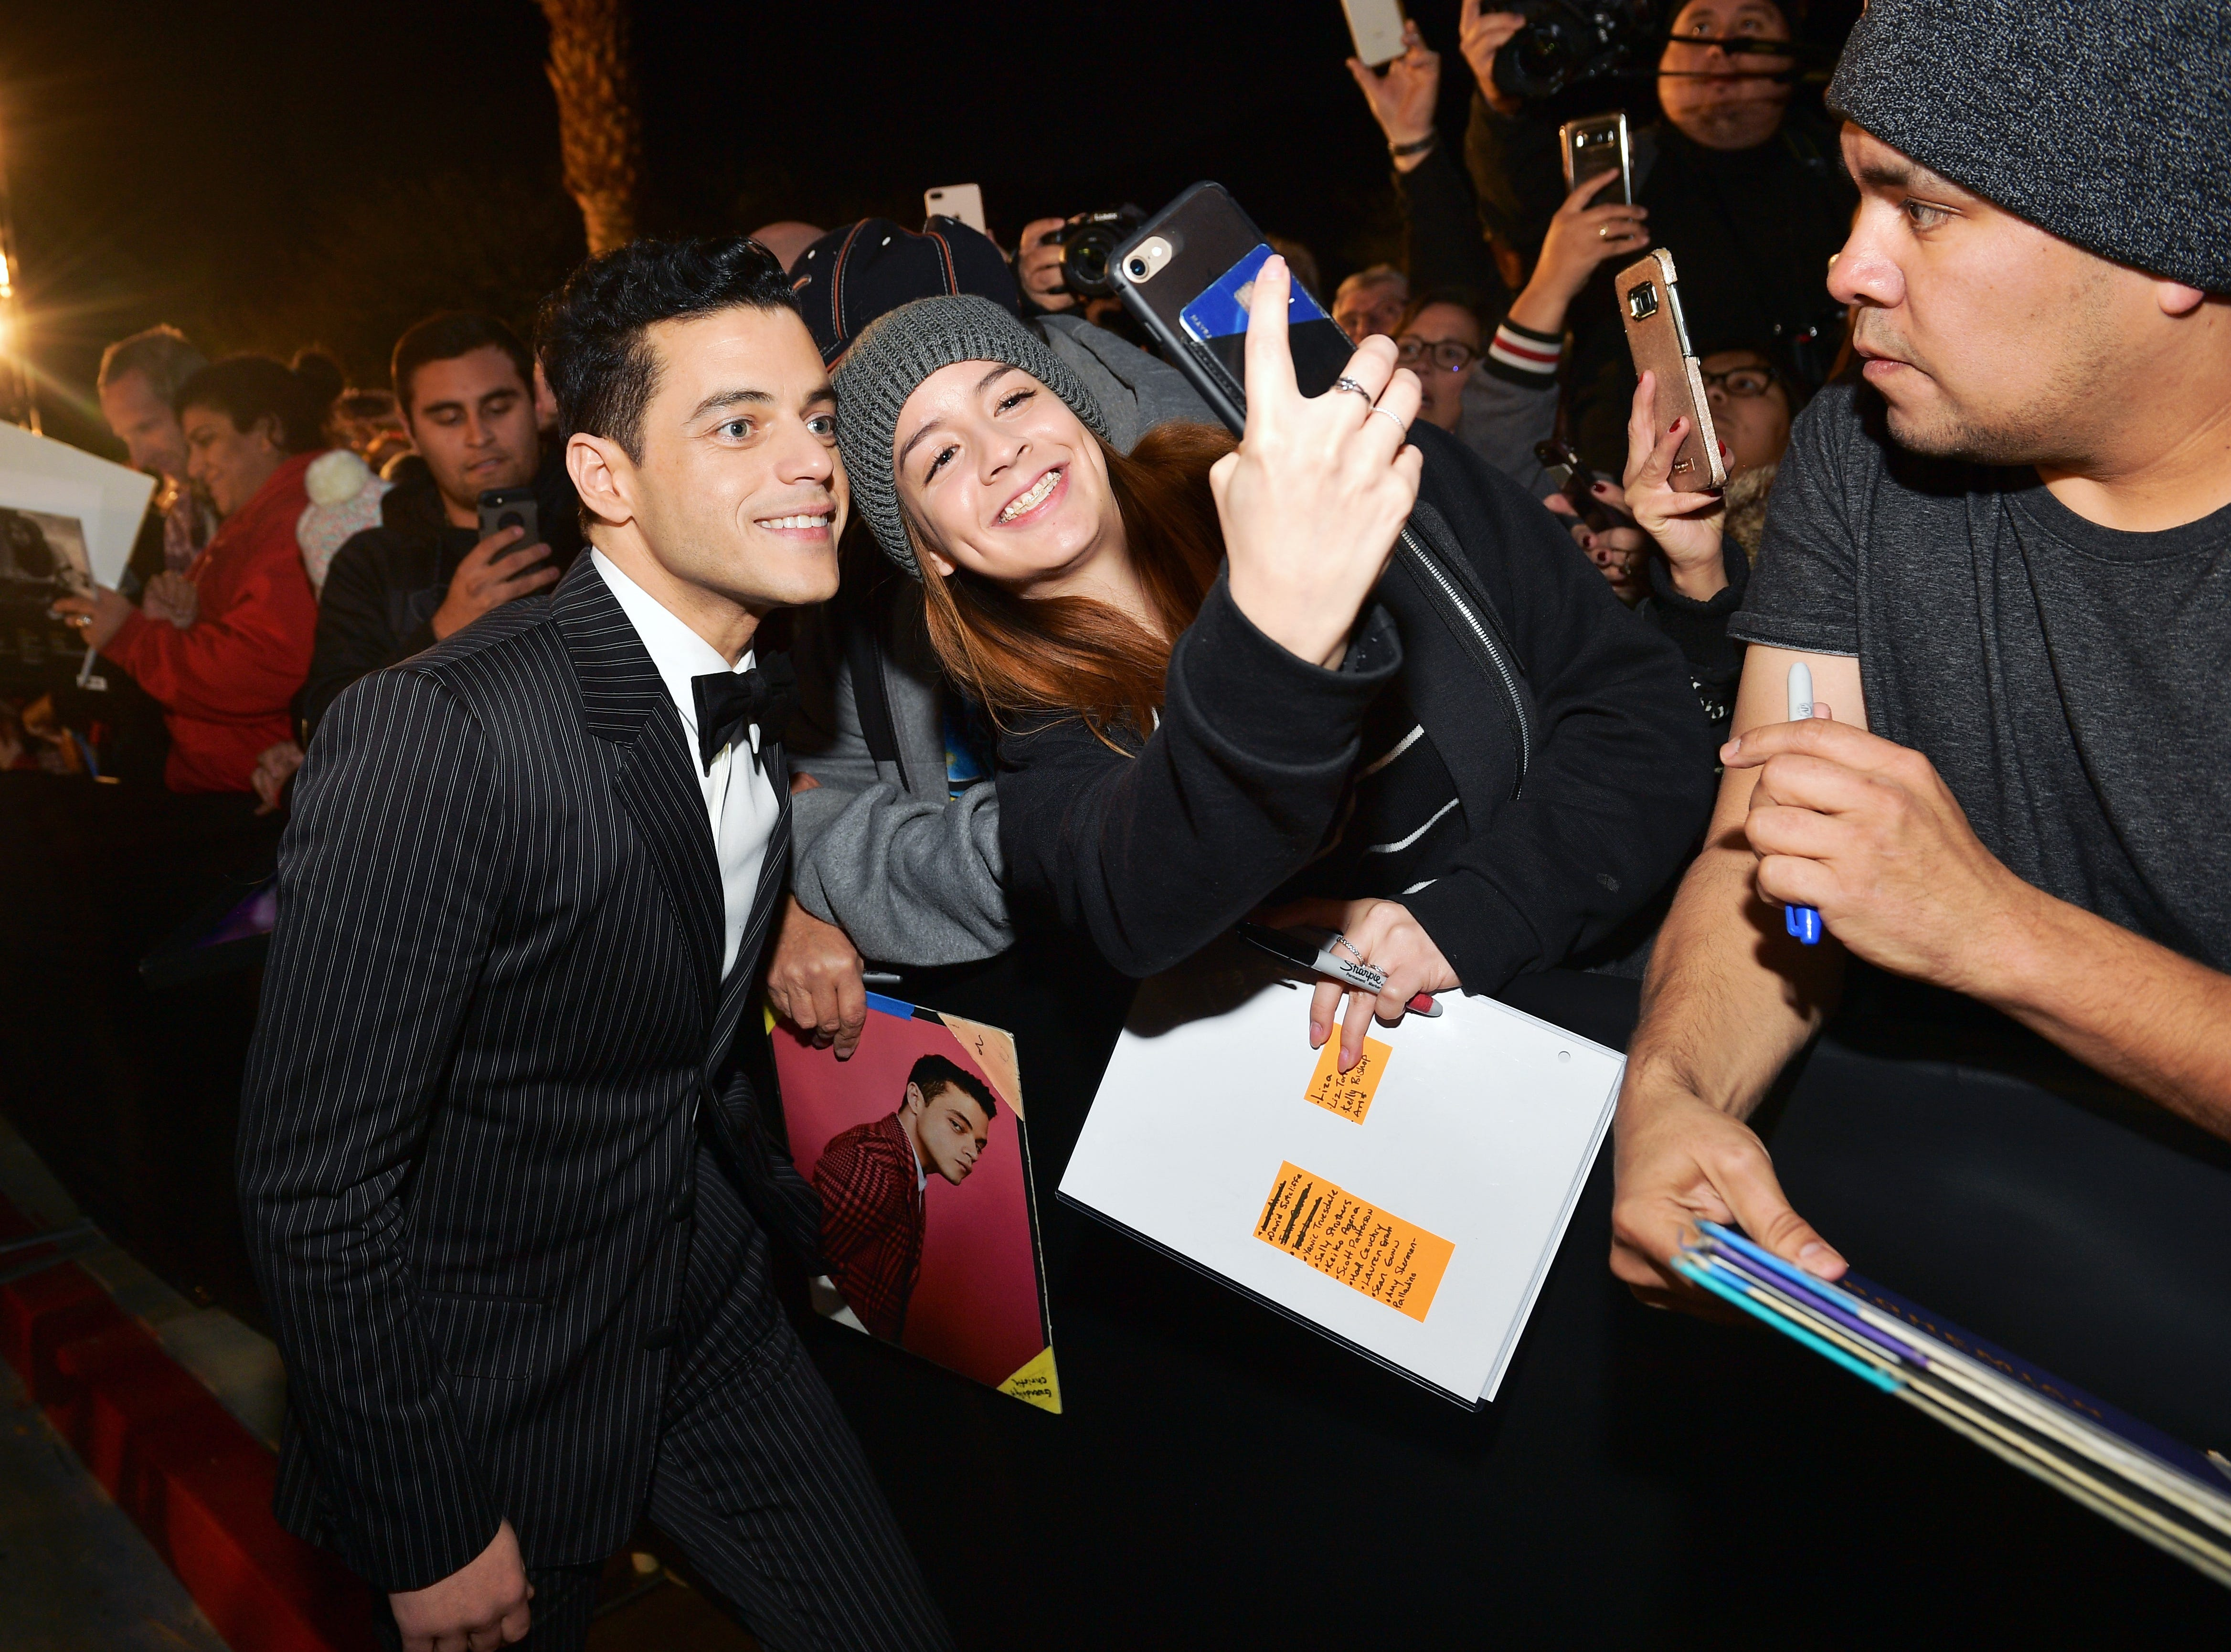 PALM SPRINGS, CA - JANUARY 03:  Rami Malek attends the 30th Annual Palm Springs International Film Festival Film Awards Gala at Palm Springs Convention Center on January 3, 2019 in Palm Springs, California.  (Photo by Matt Winkelmeyer/Getty Images for Palm Springs International Film Festival ) ORG XMIT: 775276067 ORIG FILE ID: 1076915304